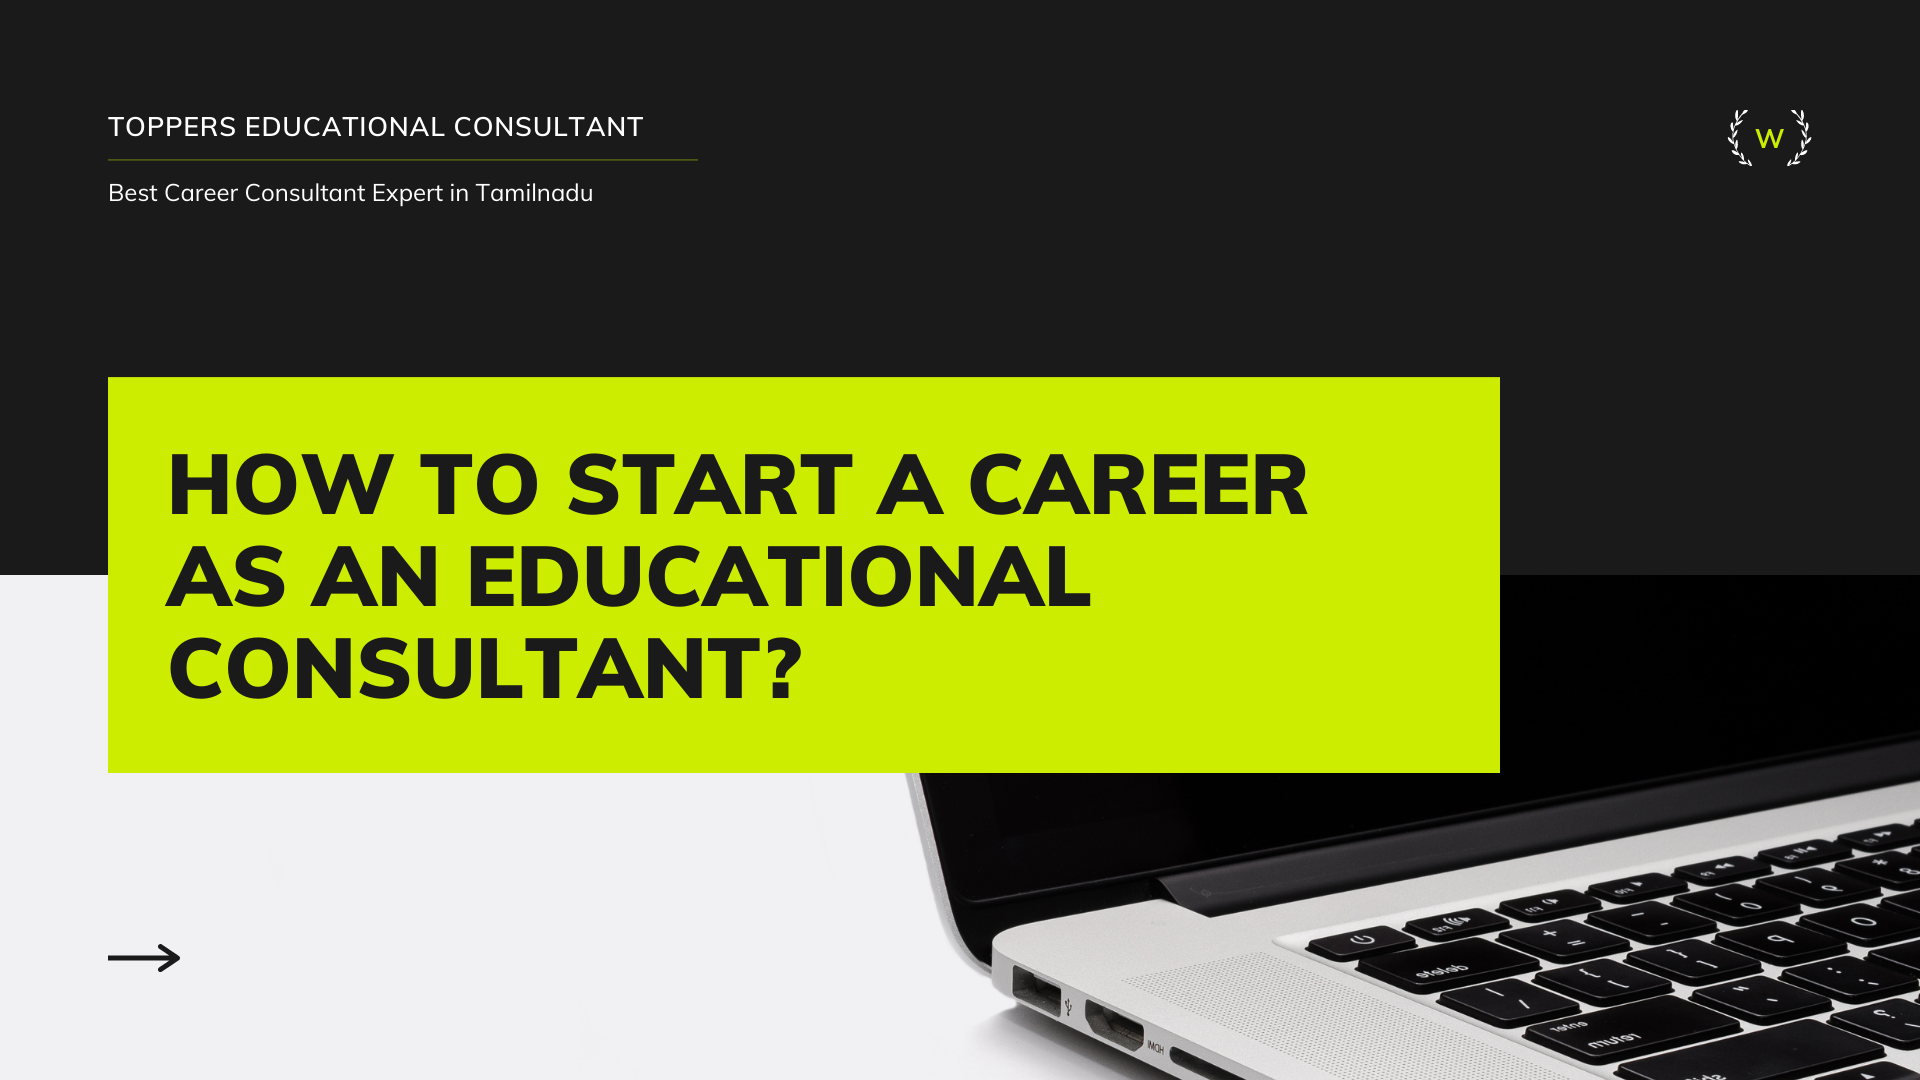 How to start a career as an educational consultant?